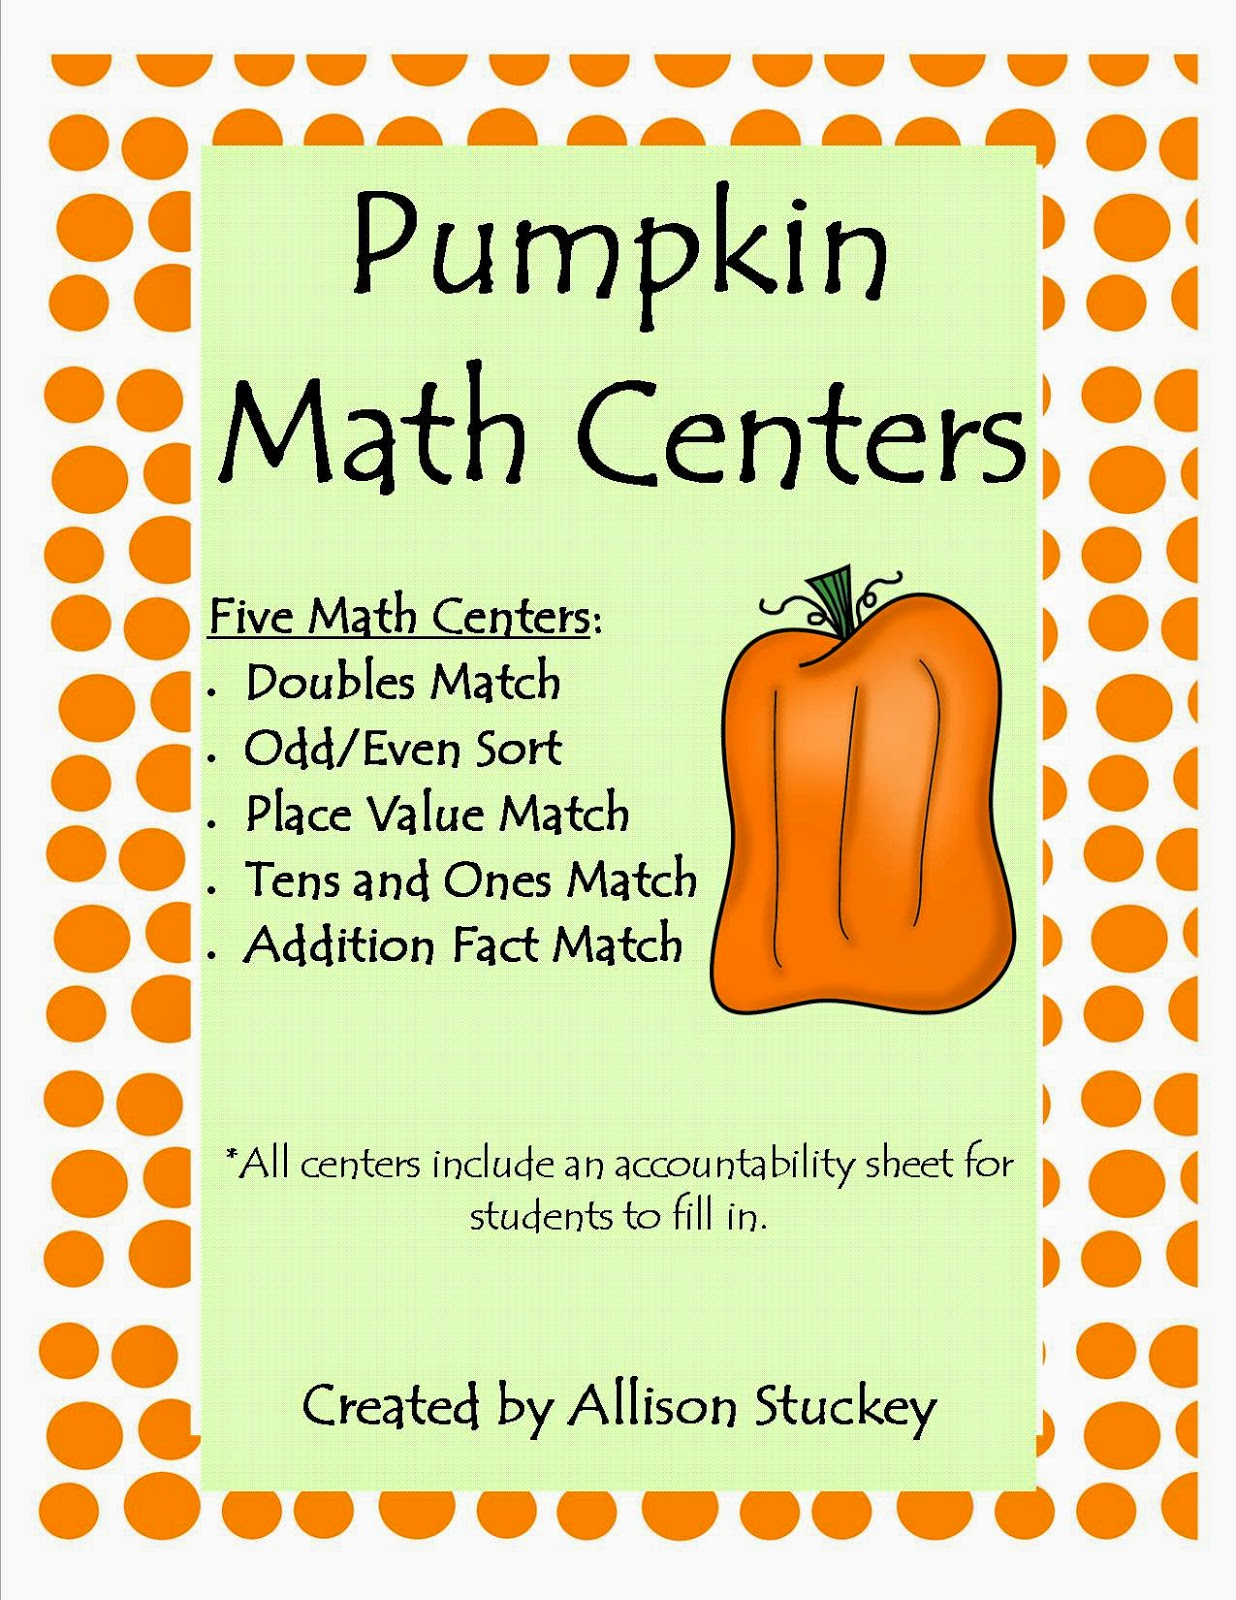 http://www.teacherspayteachers.com/Product/Pumpkin-Math-Centers-362729